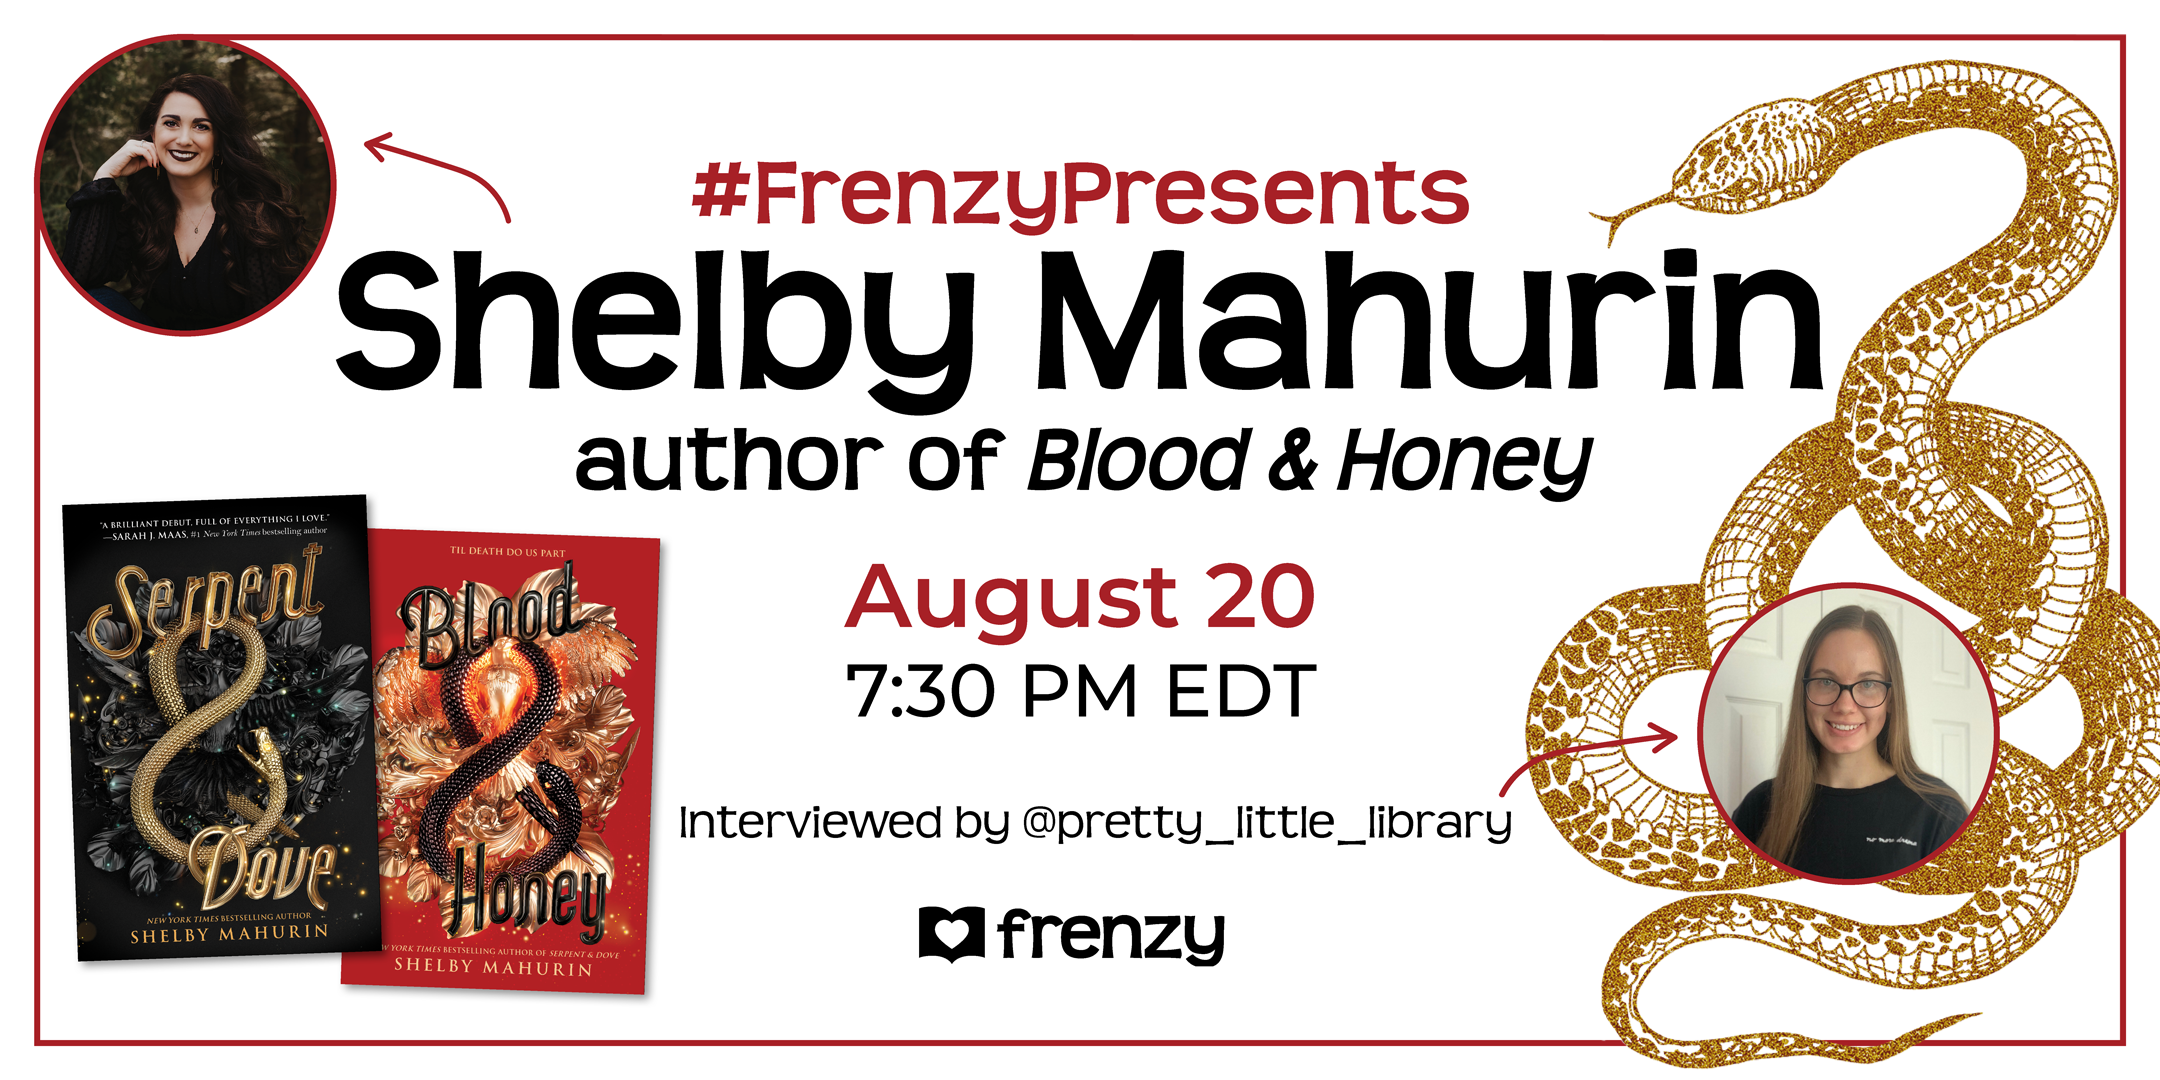 FrenzyPresents-Eventbrite-ShelbyMahurin